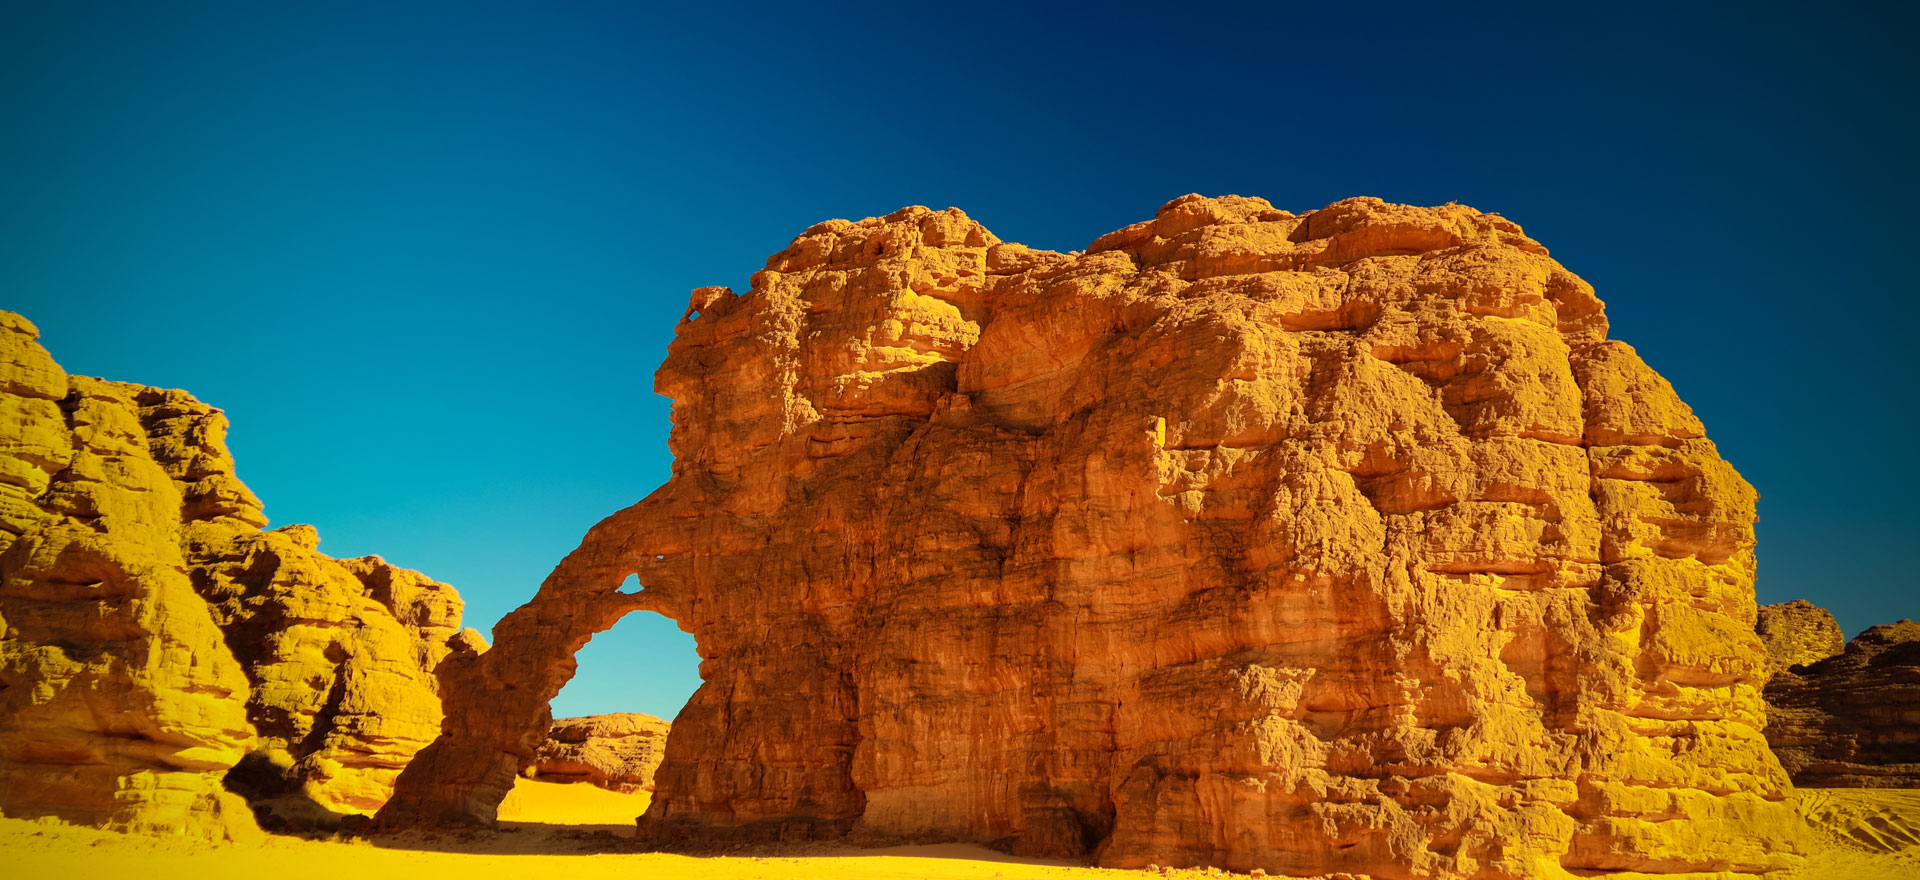 Southern Algeria itinerary - desert rock formations in Tassili n'Ajjer